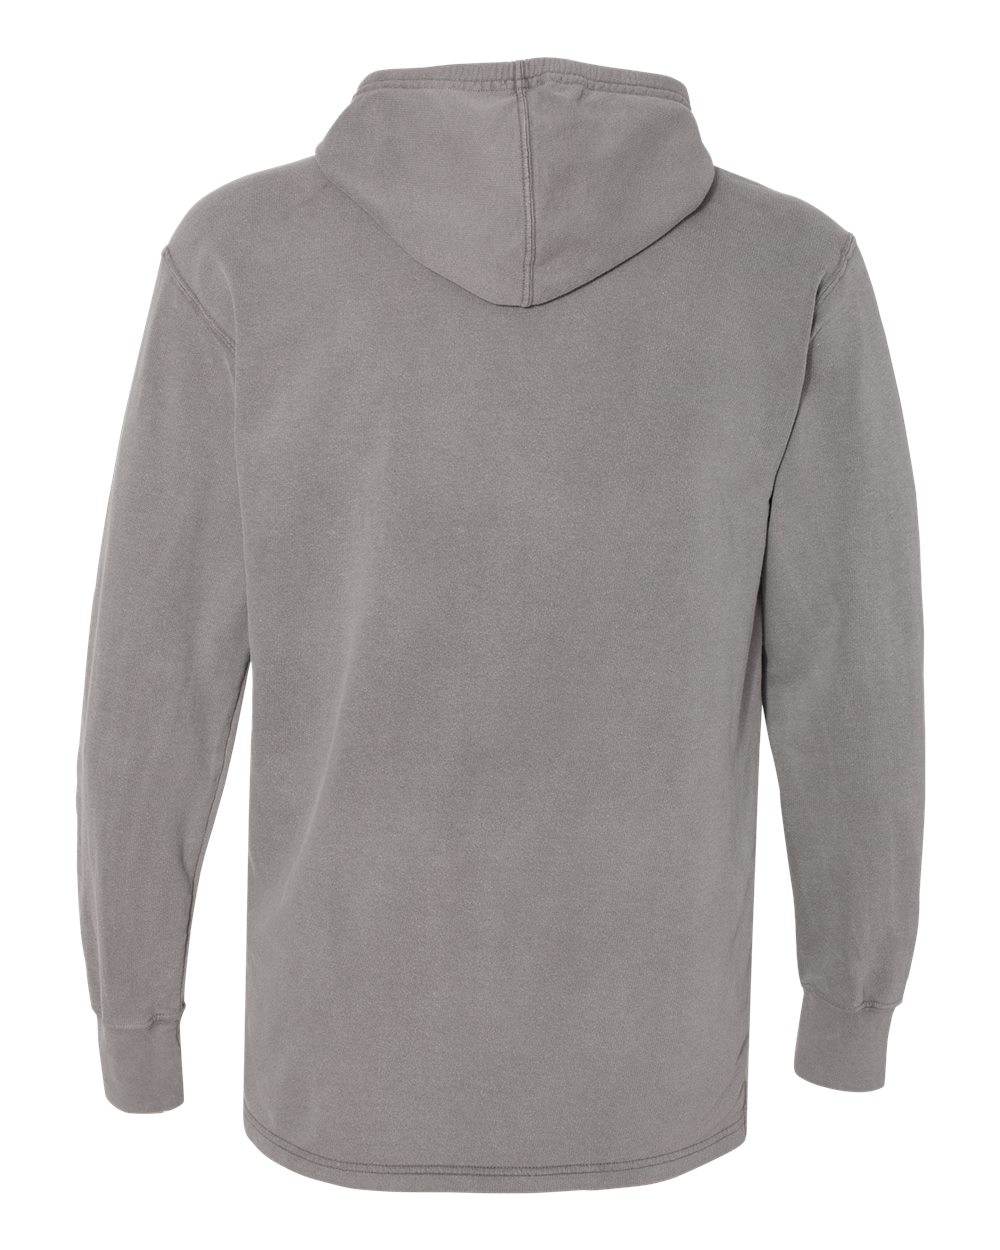 Comfort-Colors-Mens-French-Terry-Scuba-Hoodie-Shirt-Blank-Solid-1535-up-to-3XL thumbnail 10